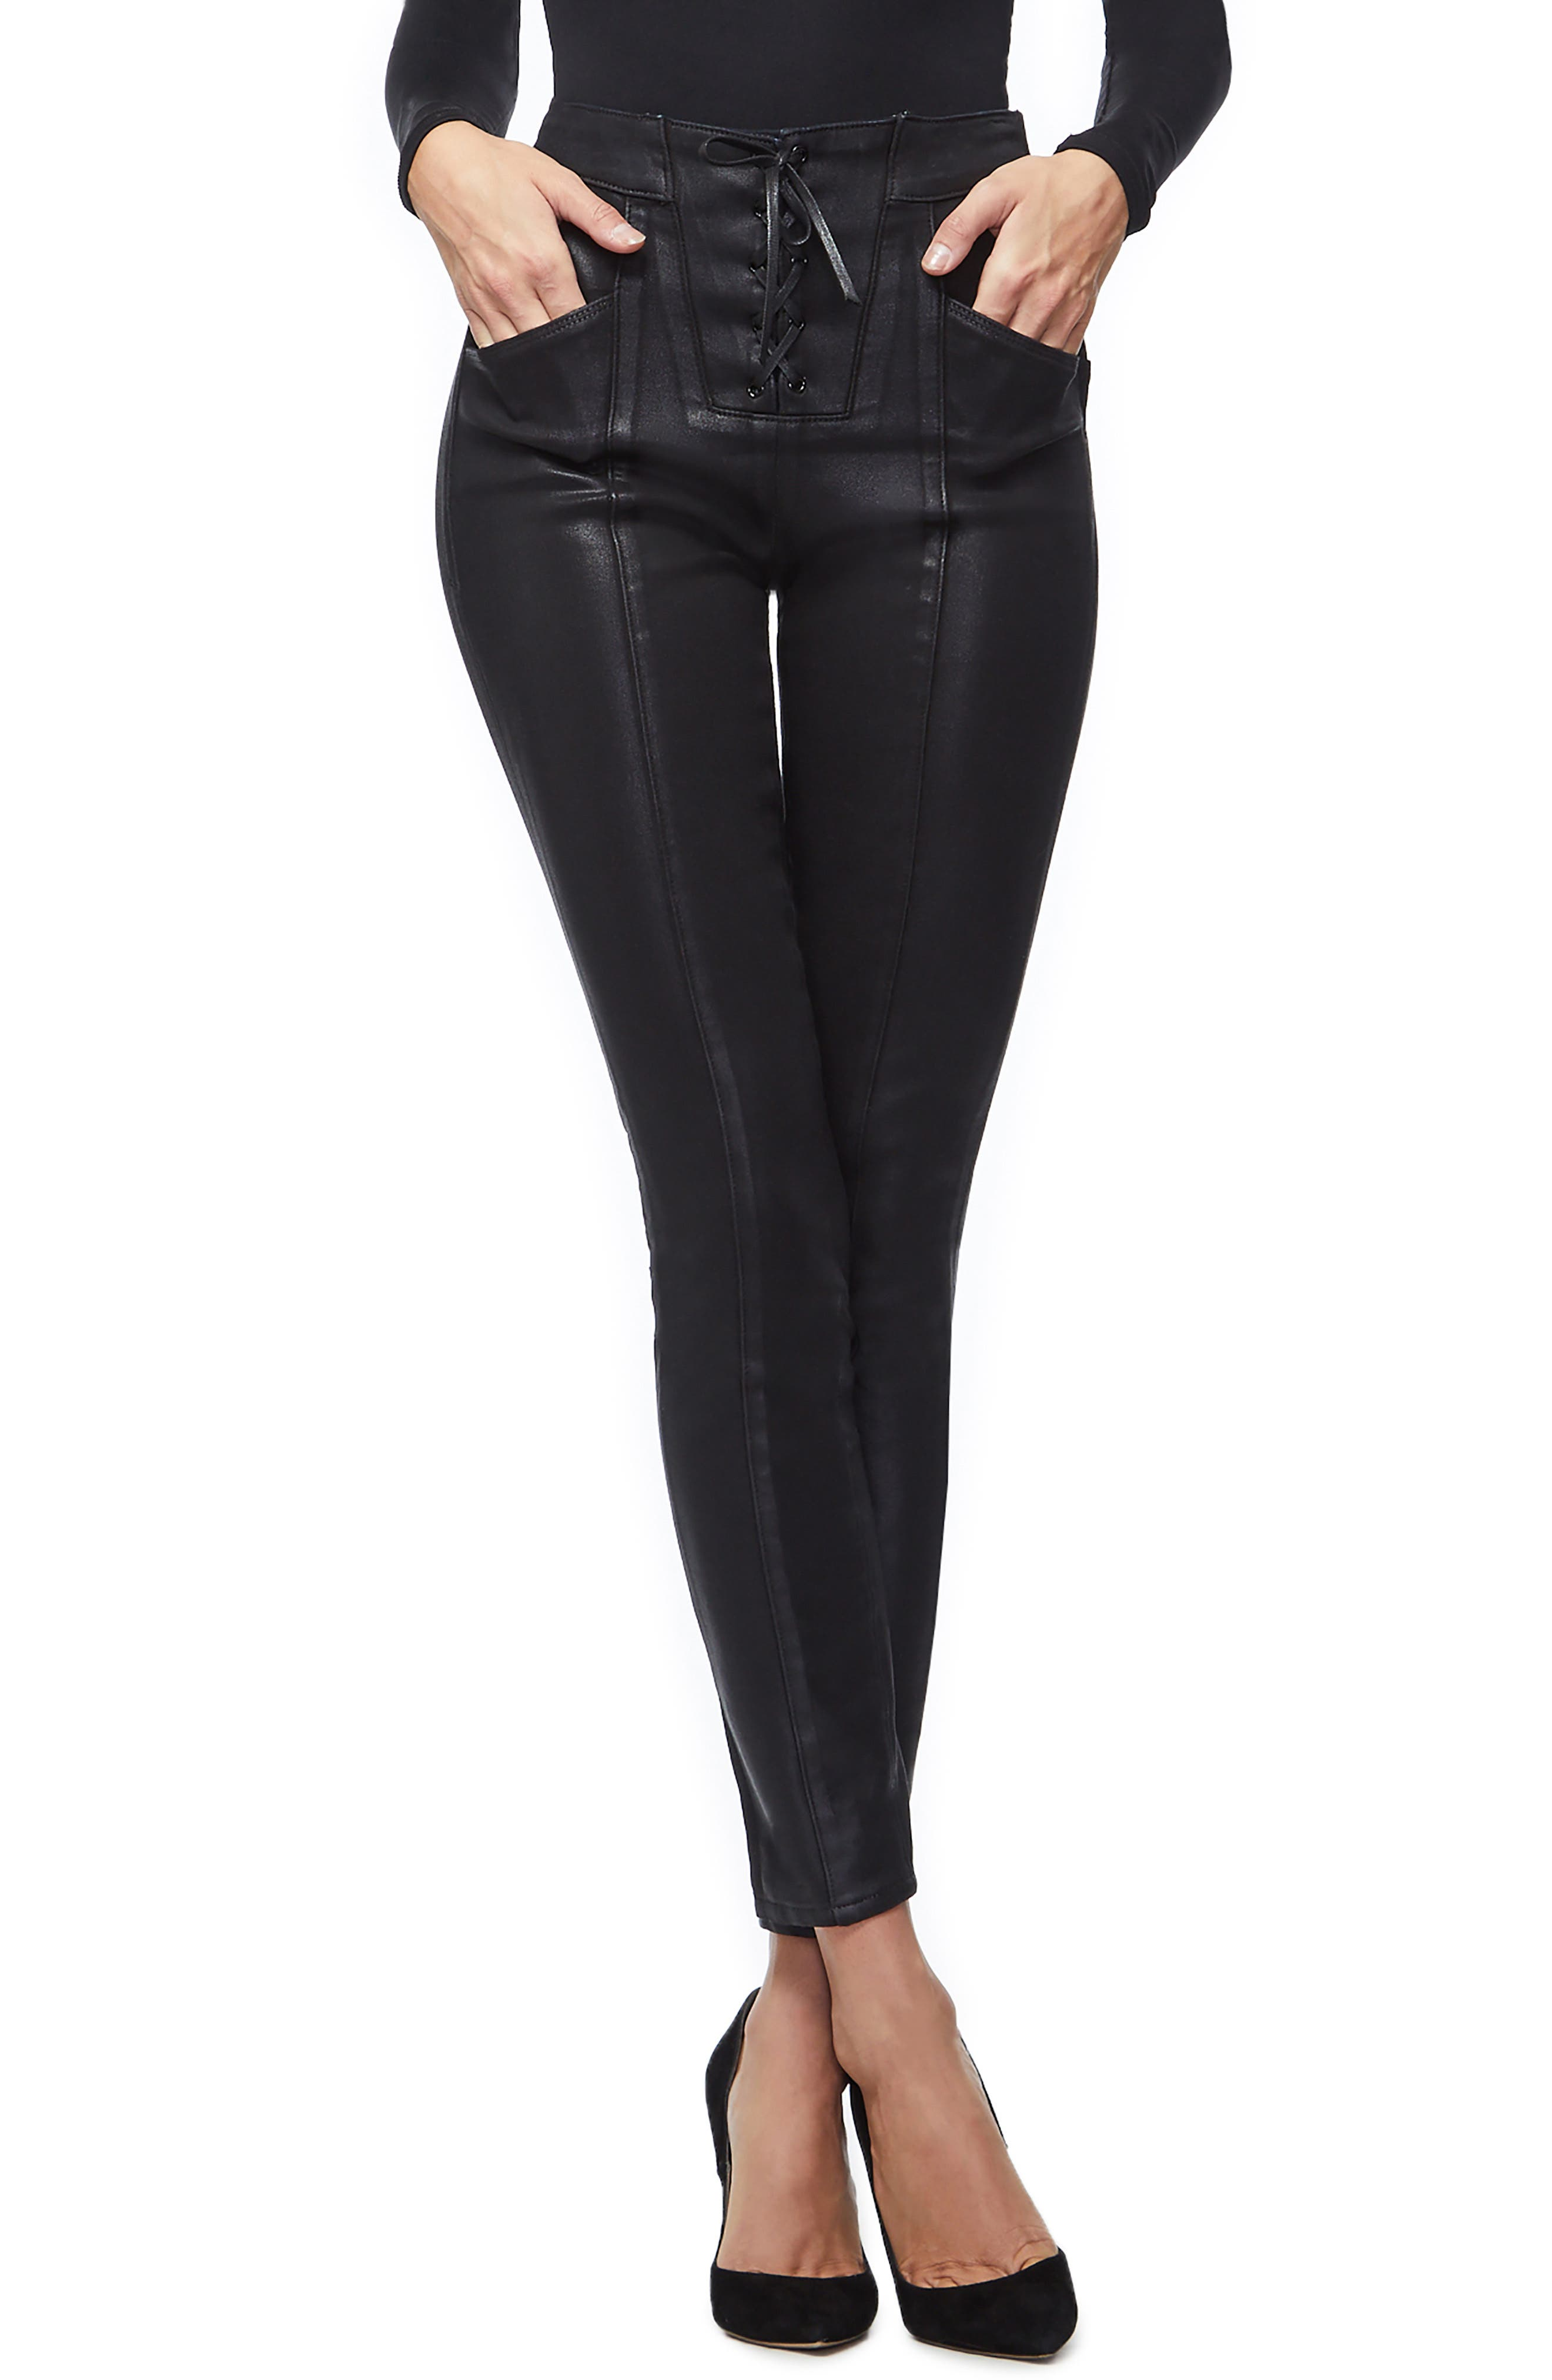 GOOD AMERICAN Coated Lace-Up High Waist Skinny Jeans, Main, color, BLACK034